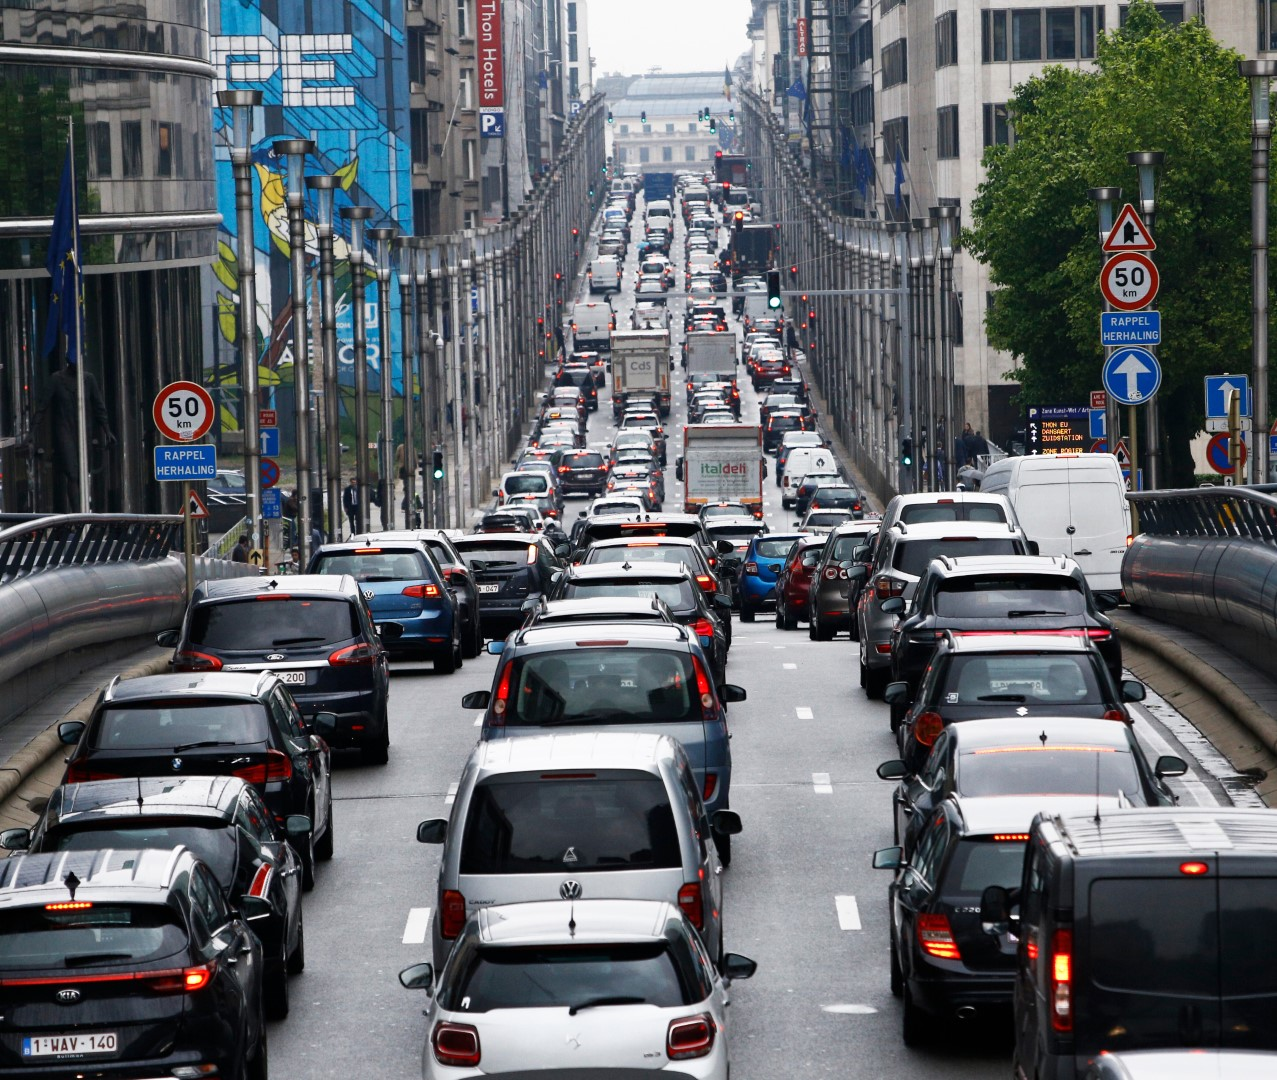 Business Travel - City of Brussels